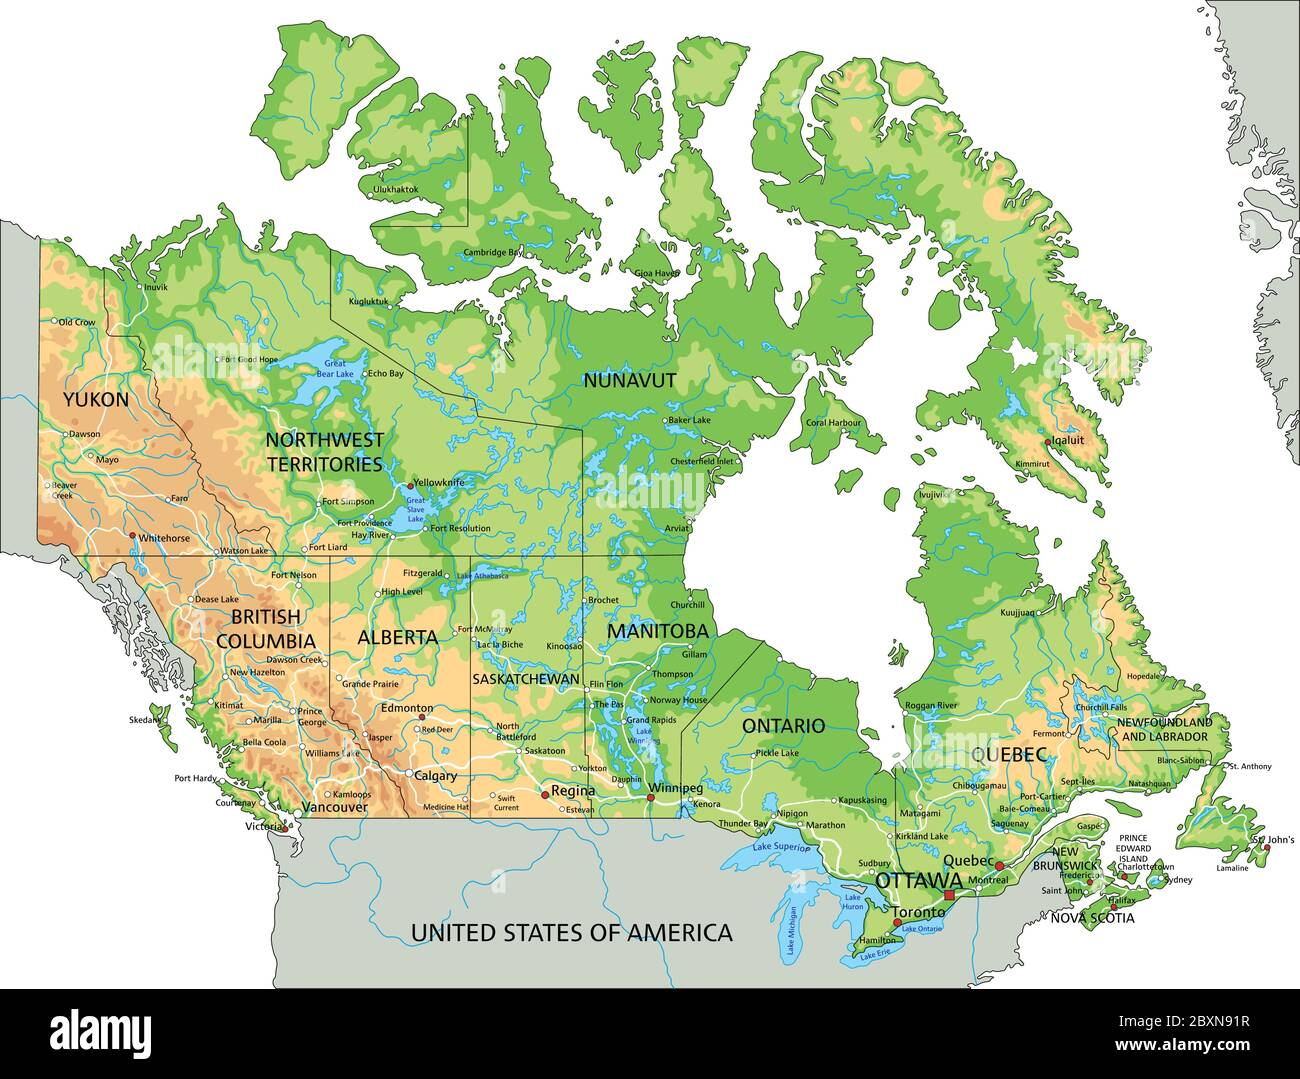 Labeled Physical Map Of Canada High detailed Canada physical map with labeling Stock Vector Image